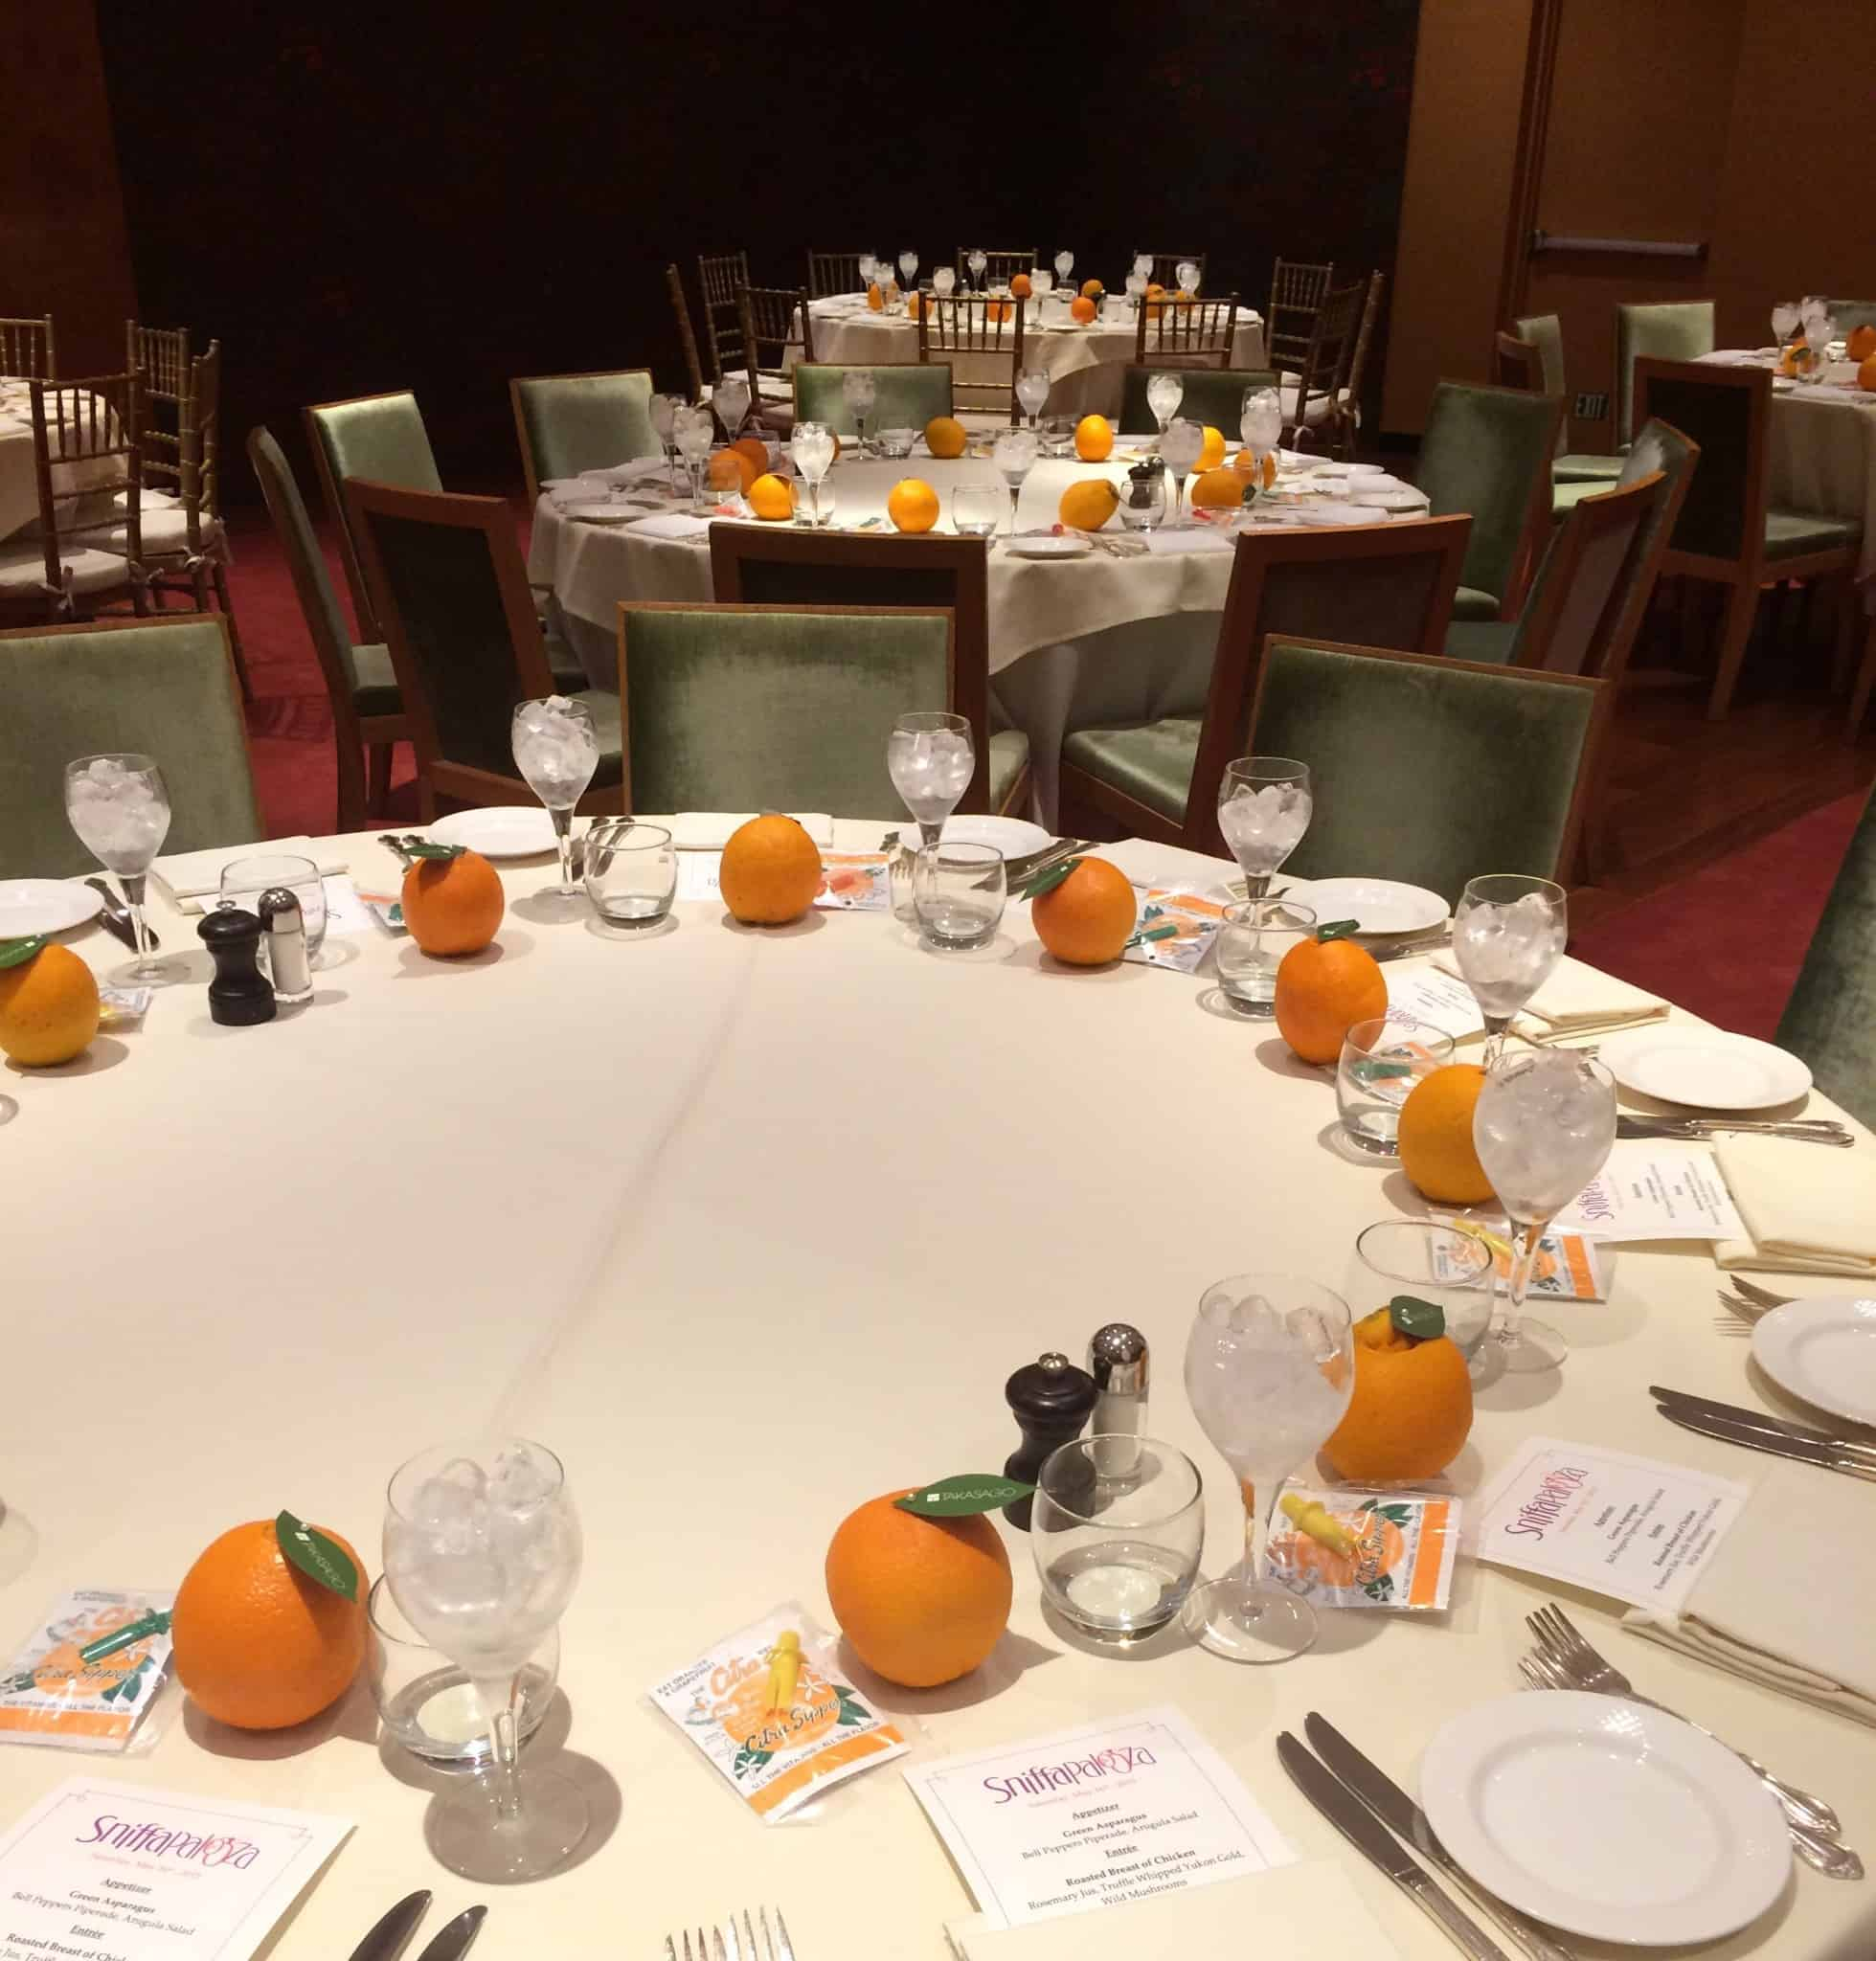 All set for our Brasserie 8 1/2 Luncheon!